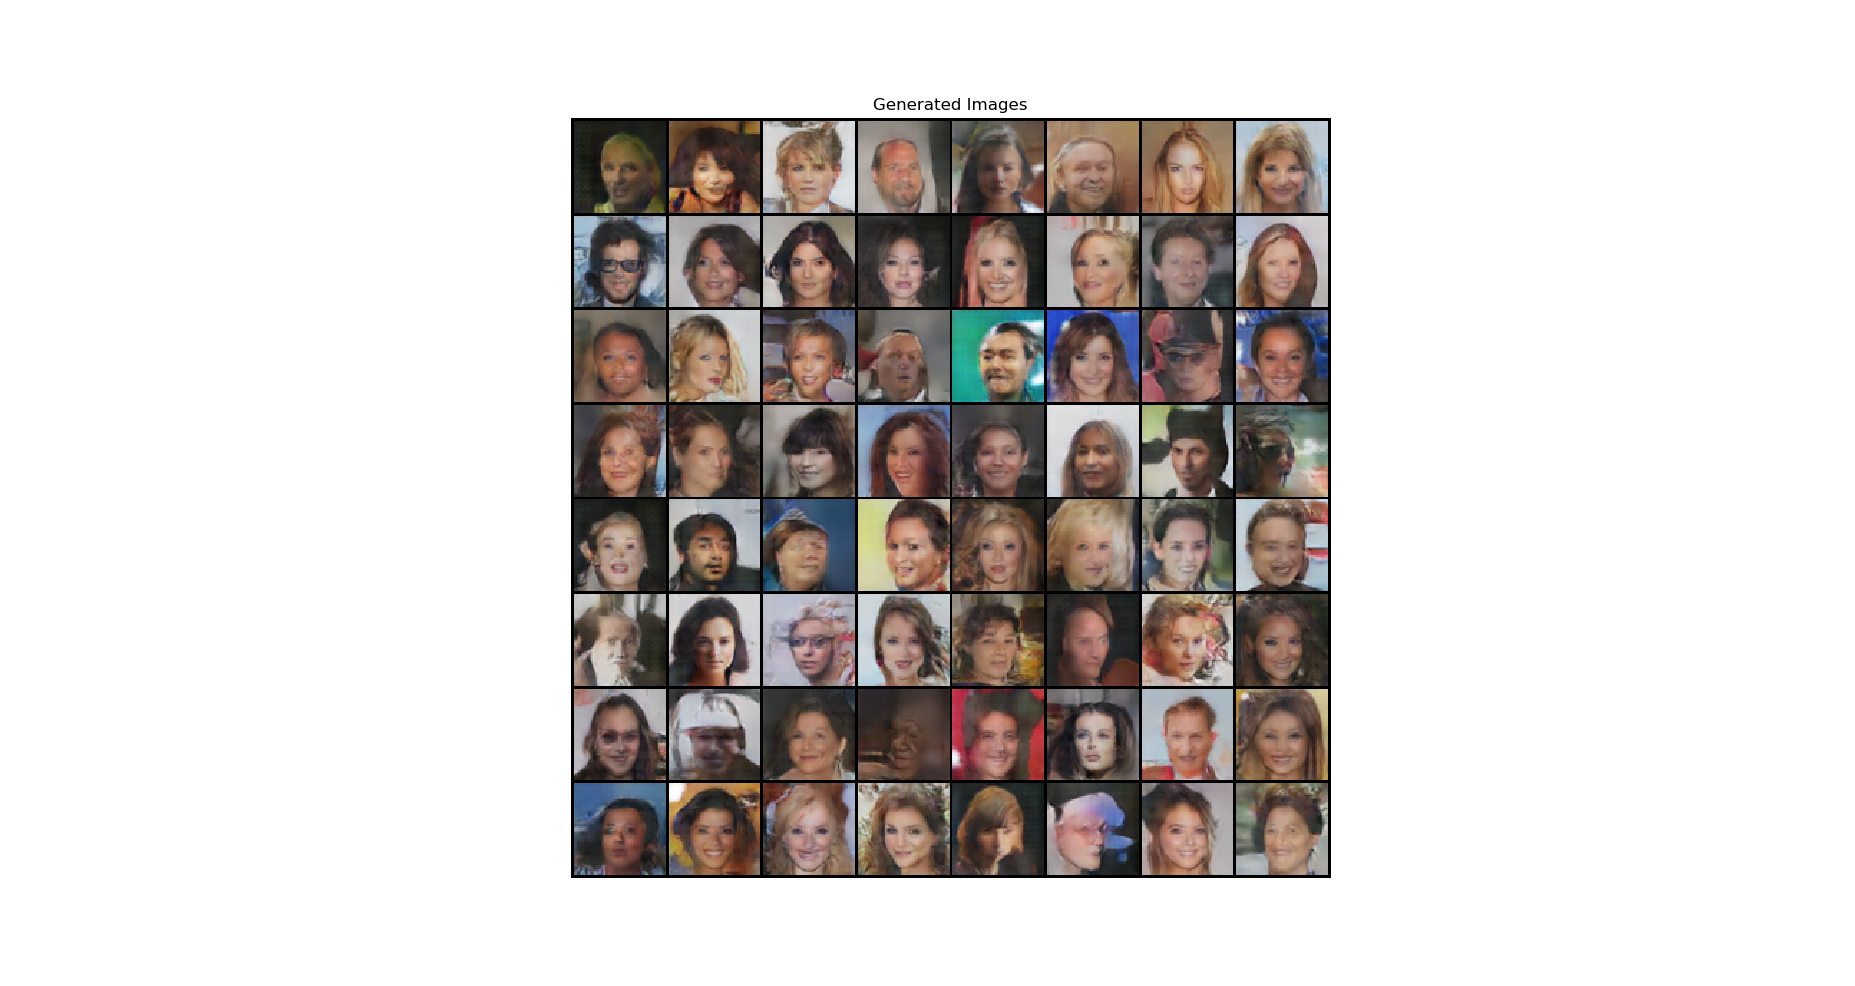 Generated Images after 10th Epoch